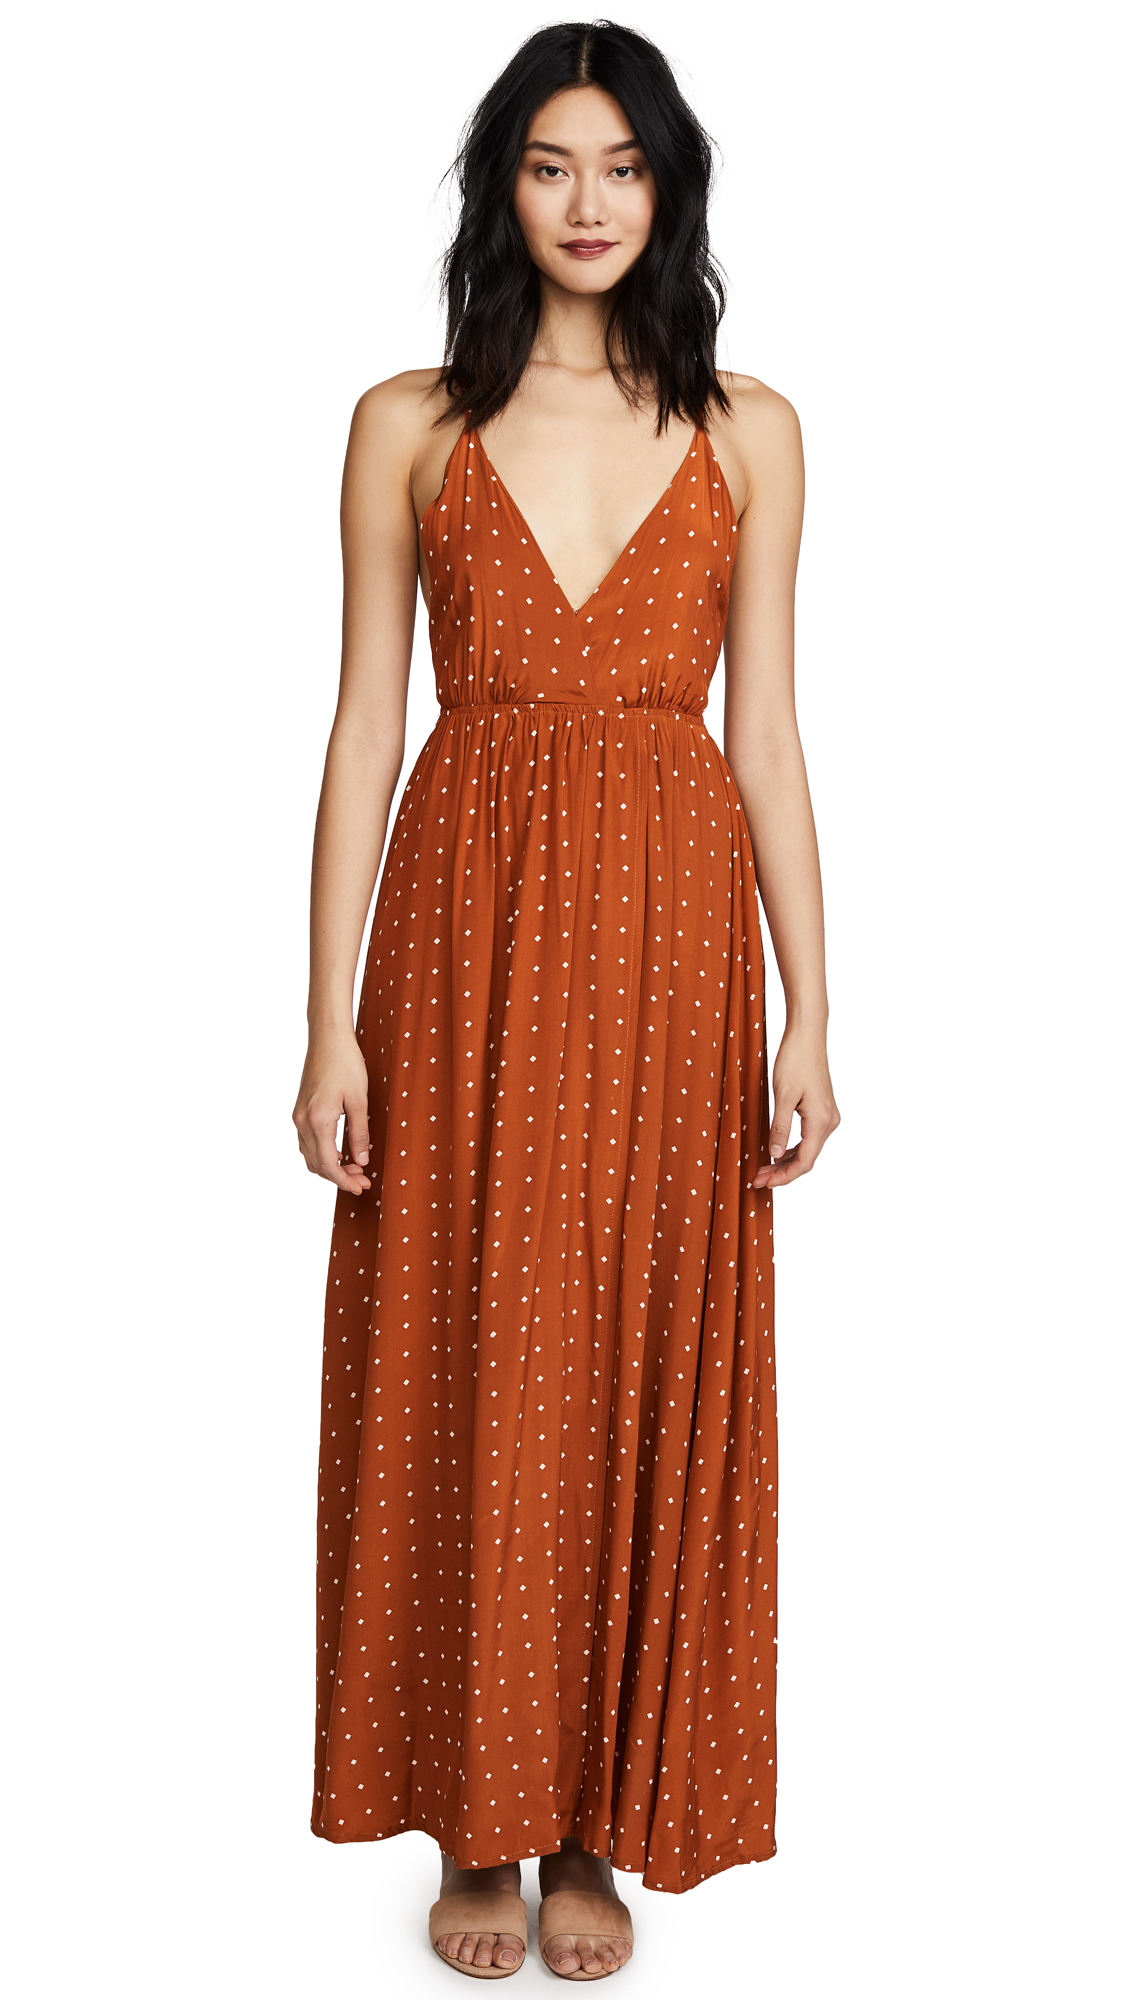 FAITHFULL THE BRAND Santa Rosa Maxi Dress - Stefano Print